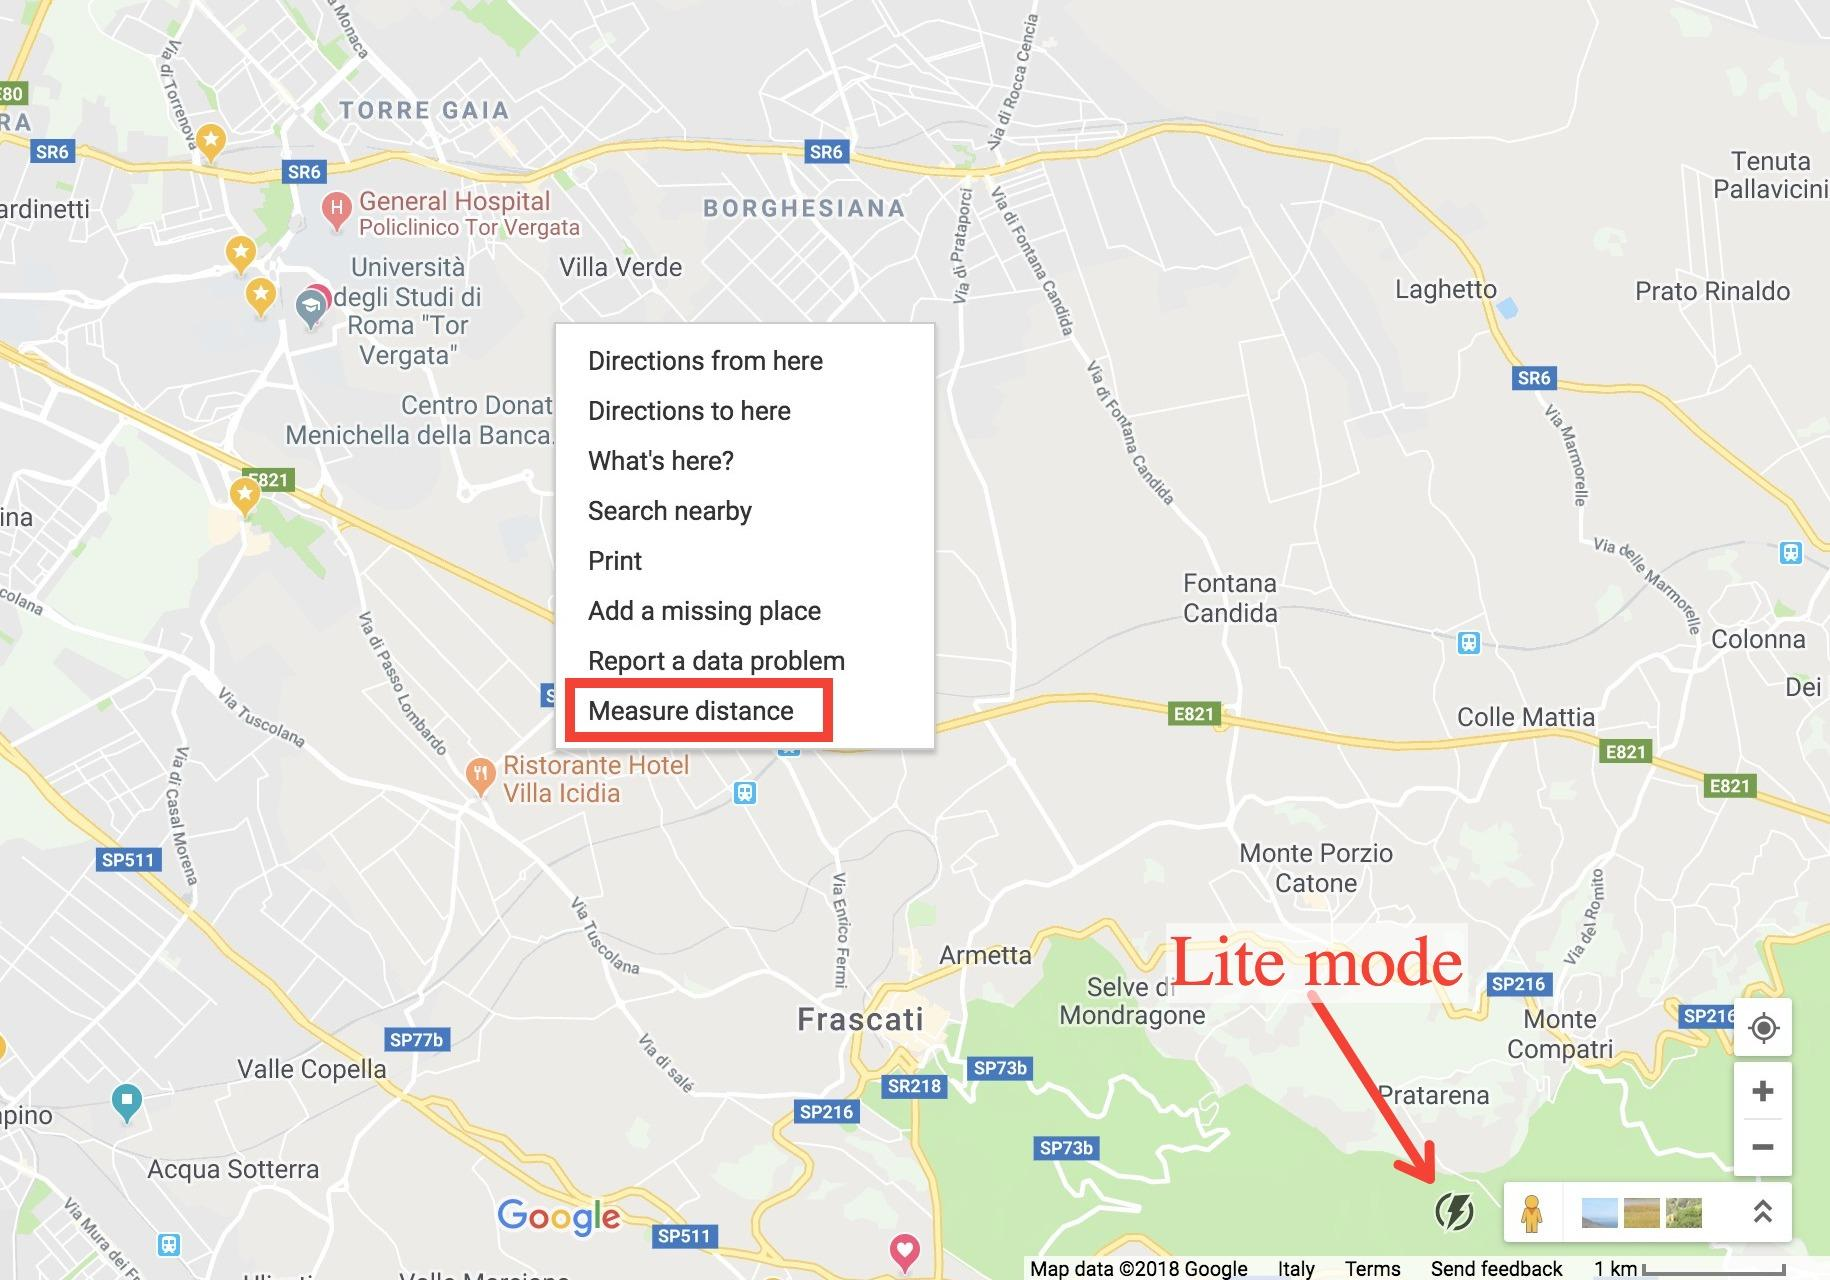 Can't measure distance in Google maps using Safari or Chrome, not in on